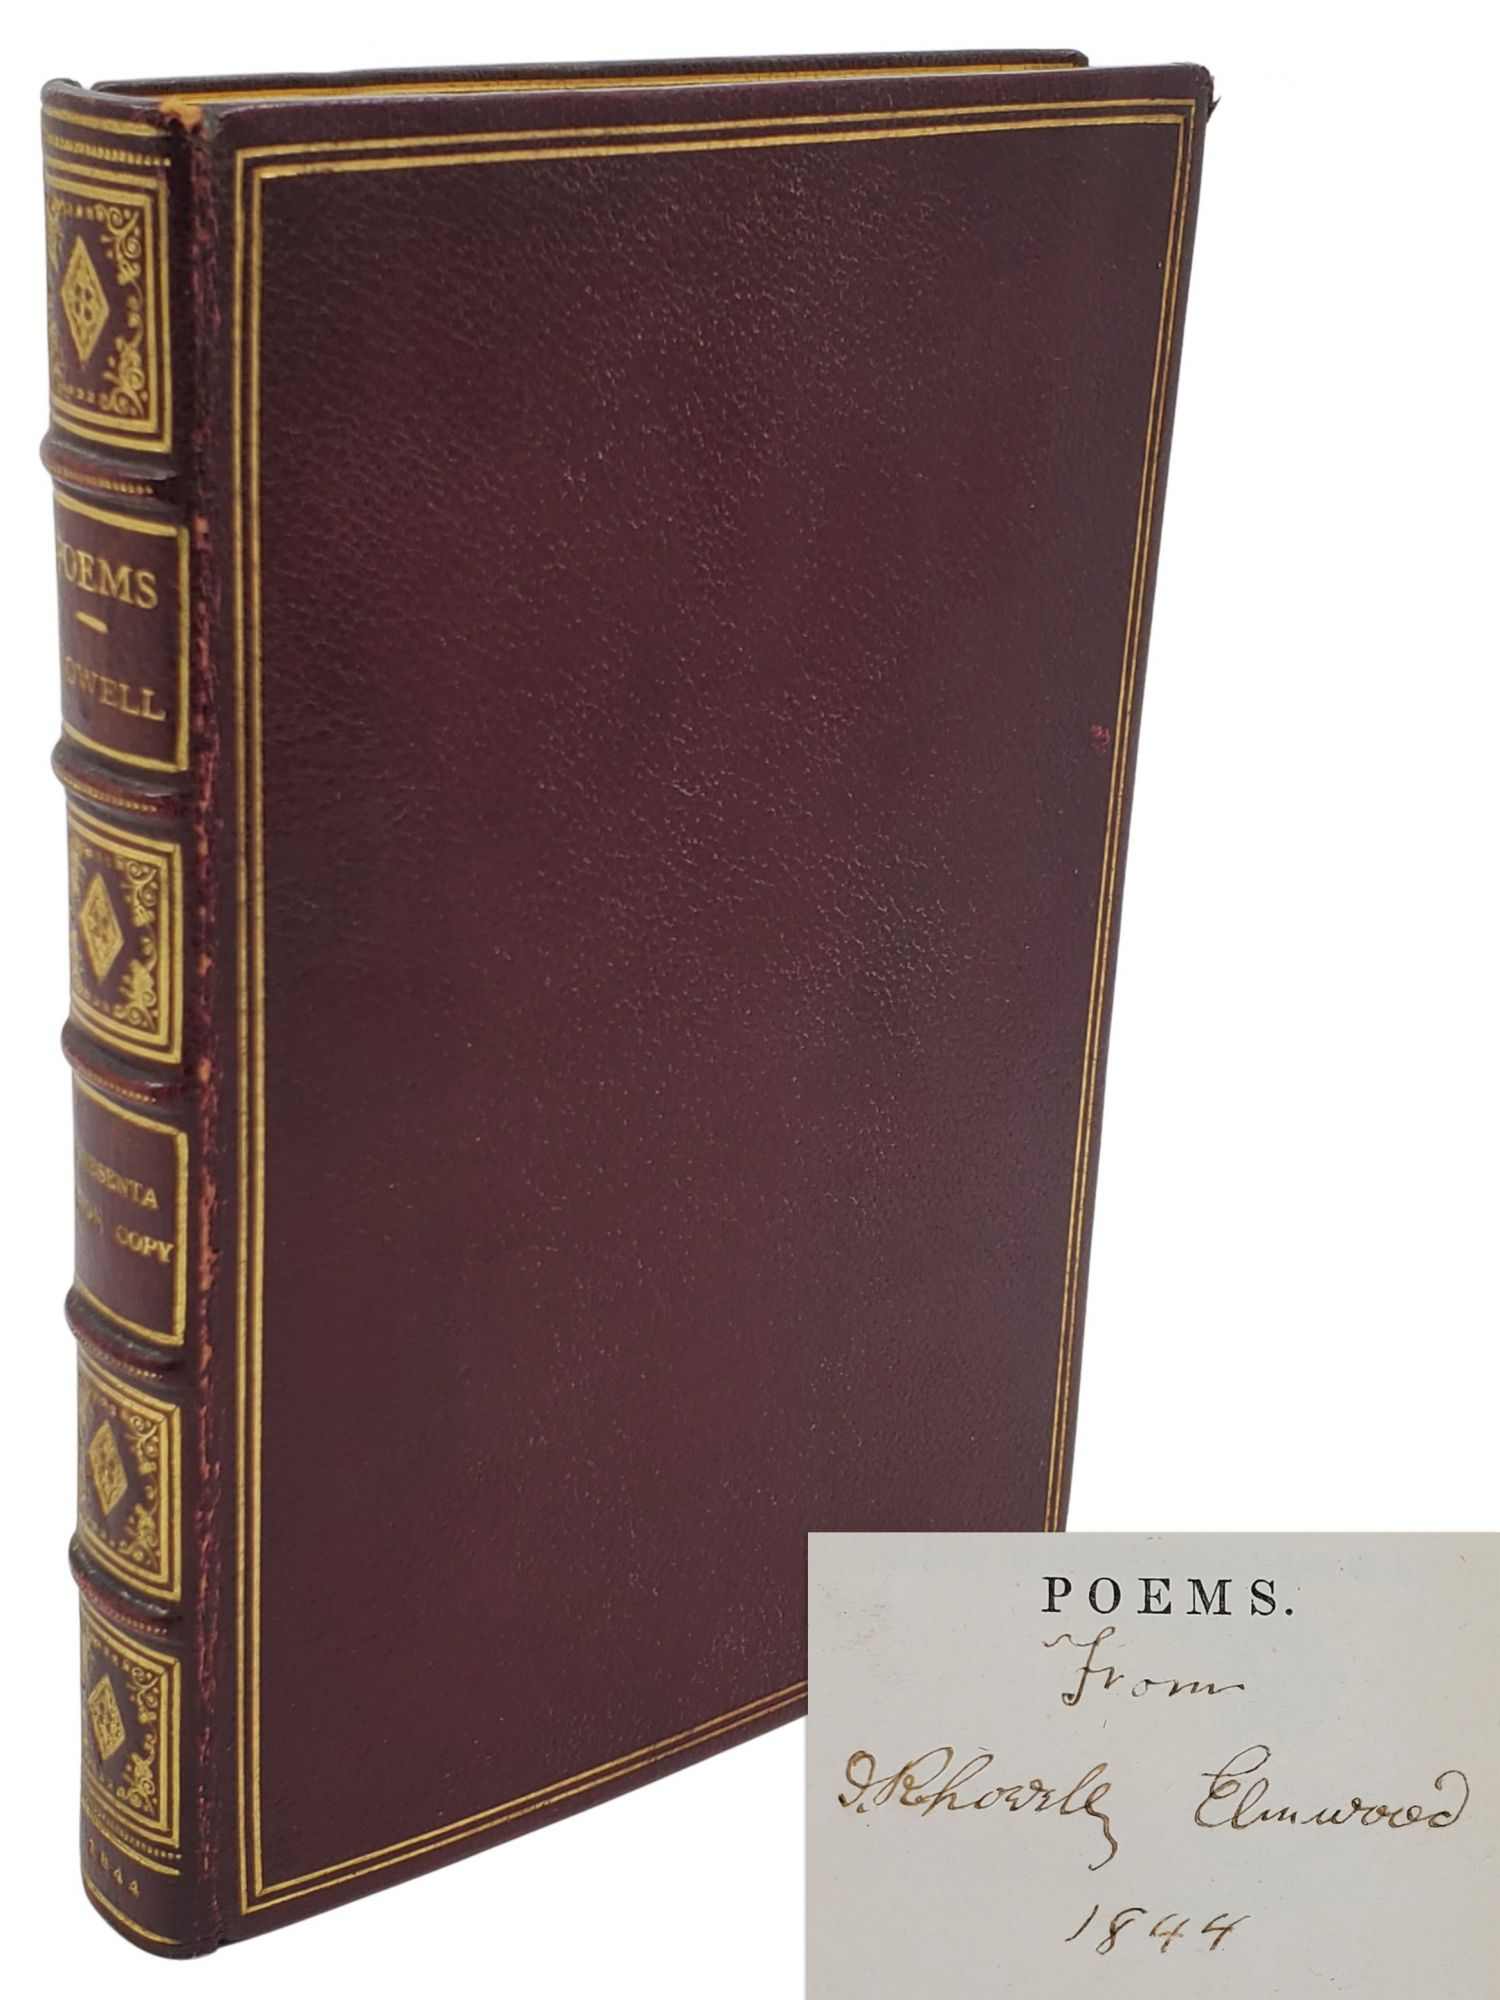 POEMS. James Russell Lowell.